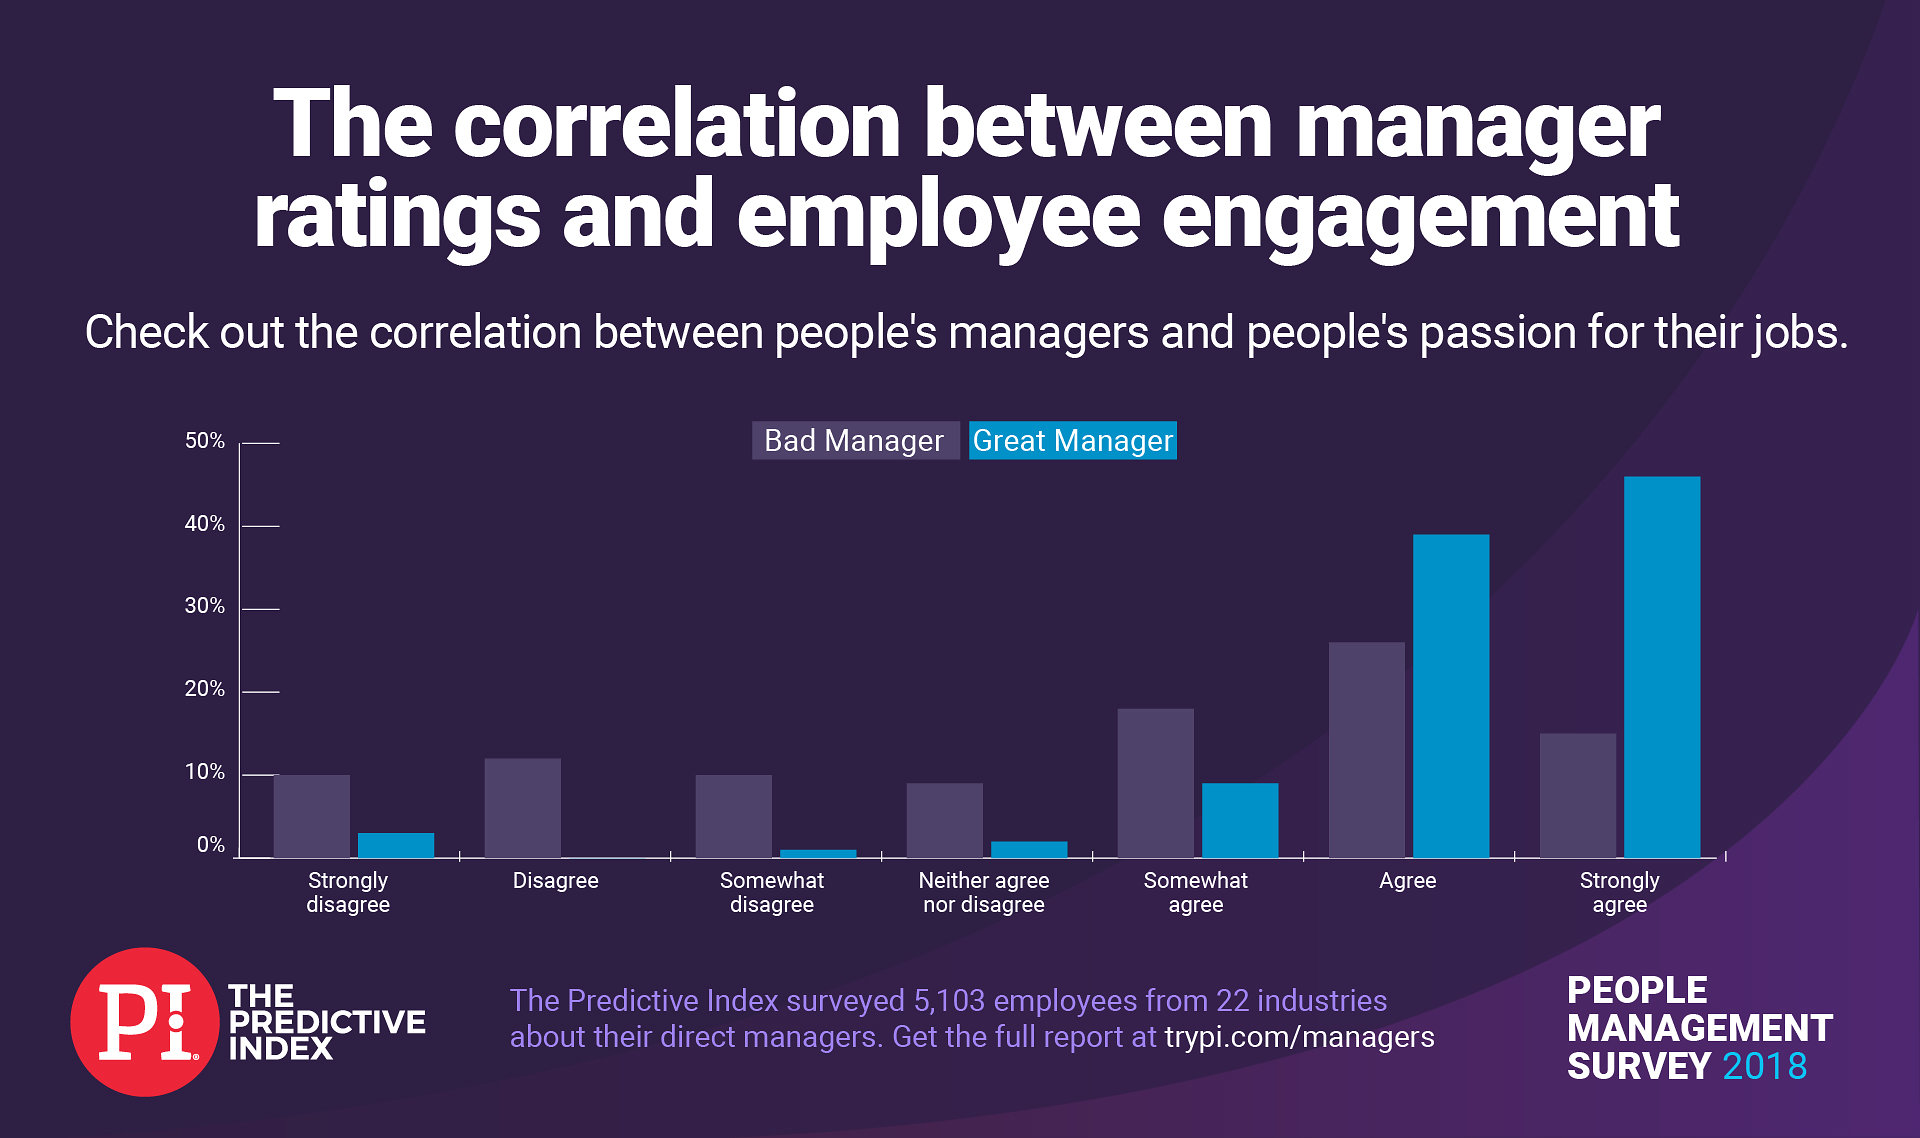 Manager ratings and employee engagement levels